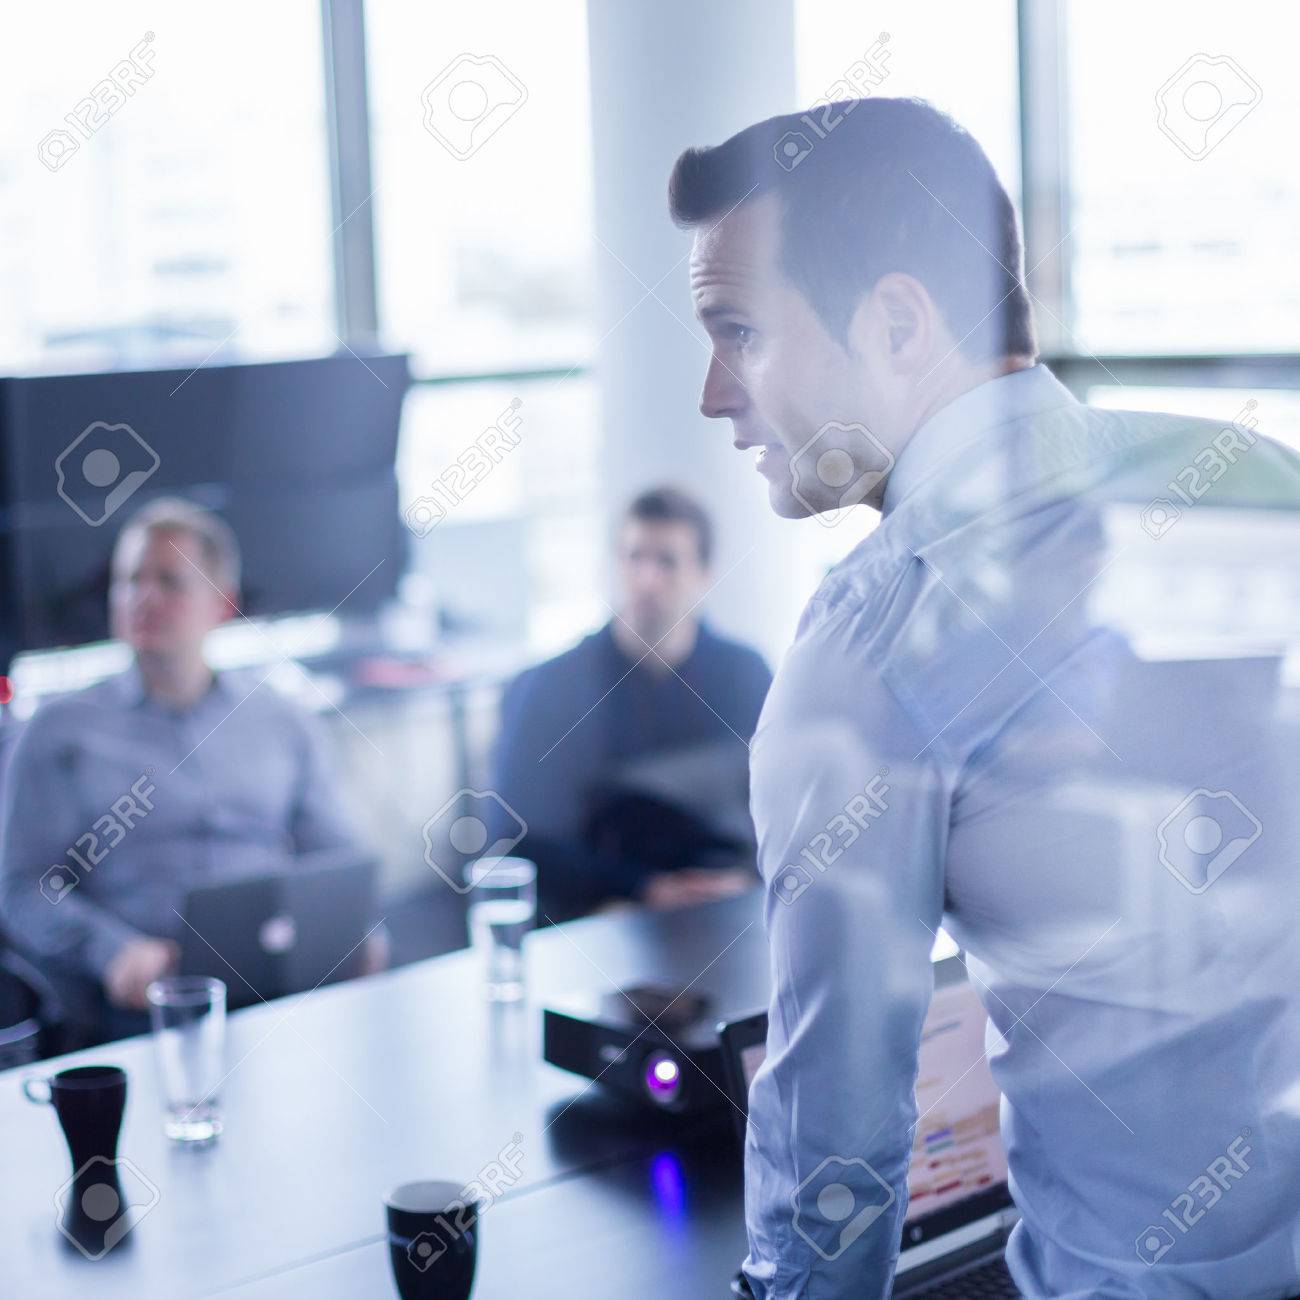 Business man making a presentation at office. Business executive delivering a presentation to his colleagues during meeting or in-house business training, explaining business plans to his employees. - 42193091